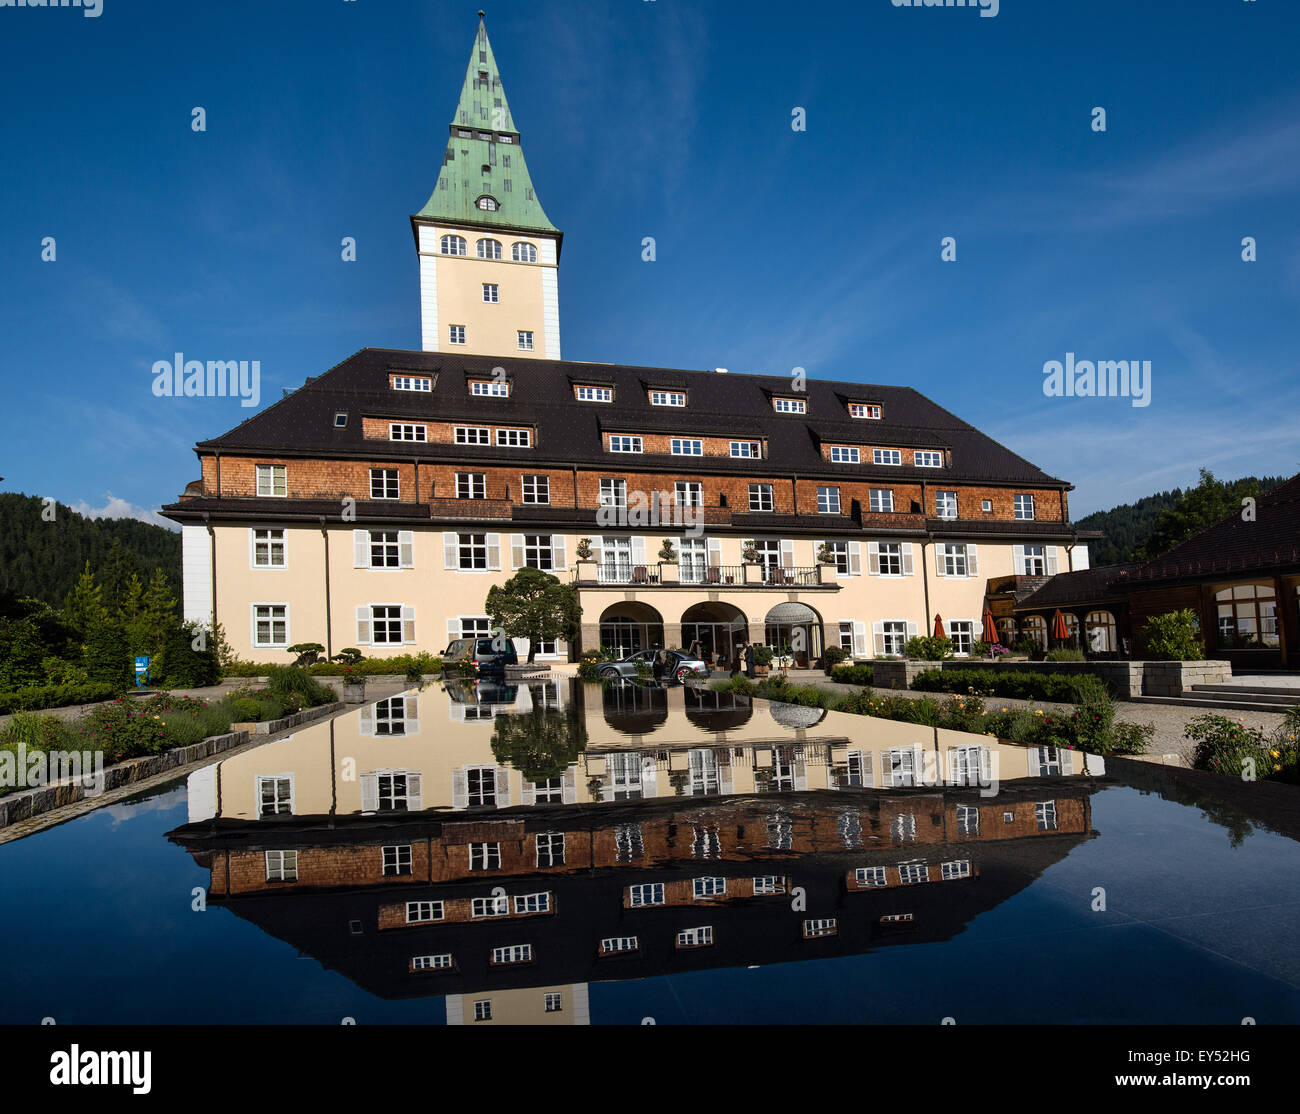 Schloss Elmau Castle Hotel with tower, reflected in the fountain basin, Wetterstein mountains, Klais, Krün, - Stock Image